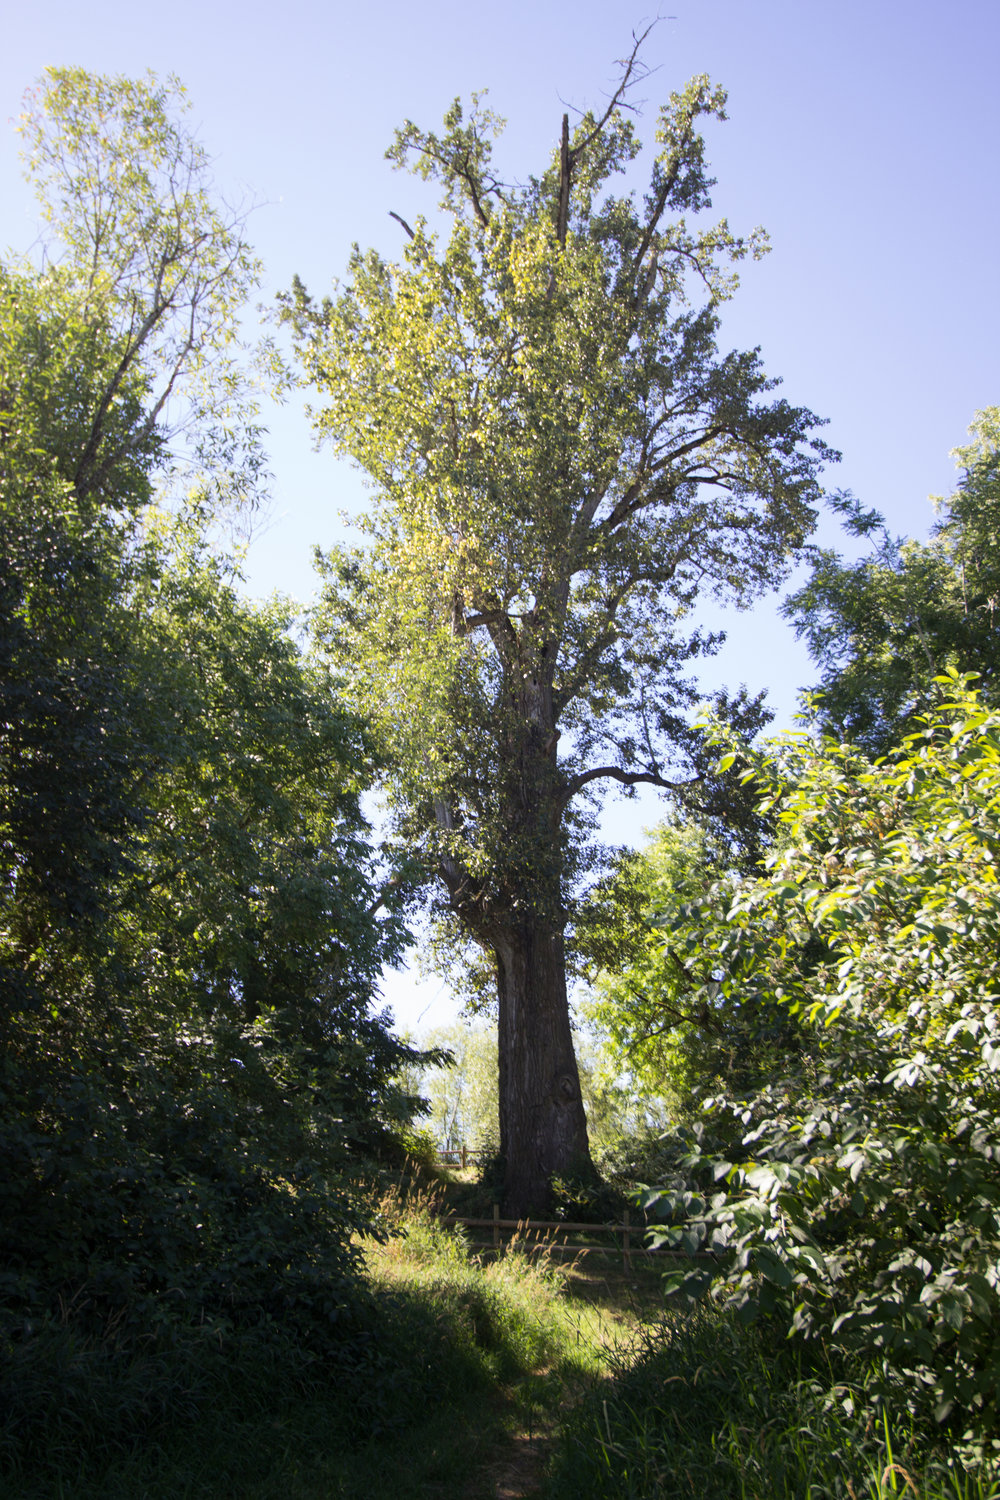 The nation's largest black cottonwood